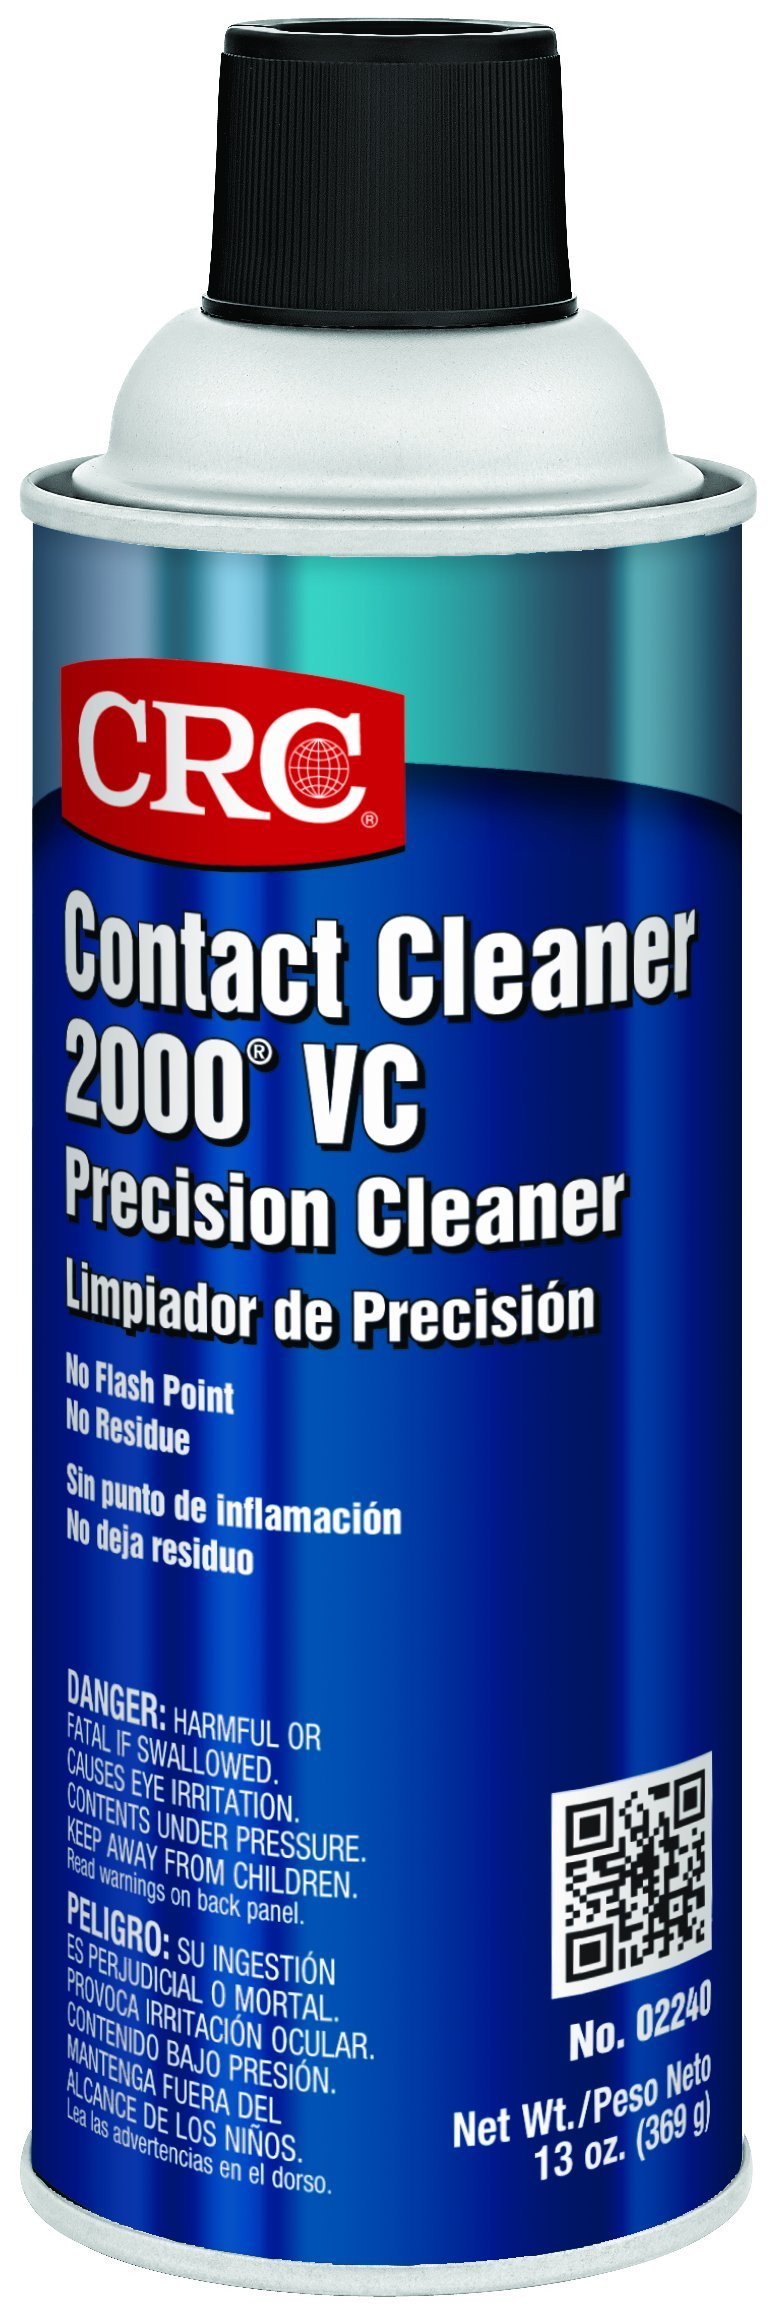 CRC Contact 2000 VC Precision Cleaner, 16 oz (Net Fill 13 oz) Aerosol Can, Clear